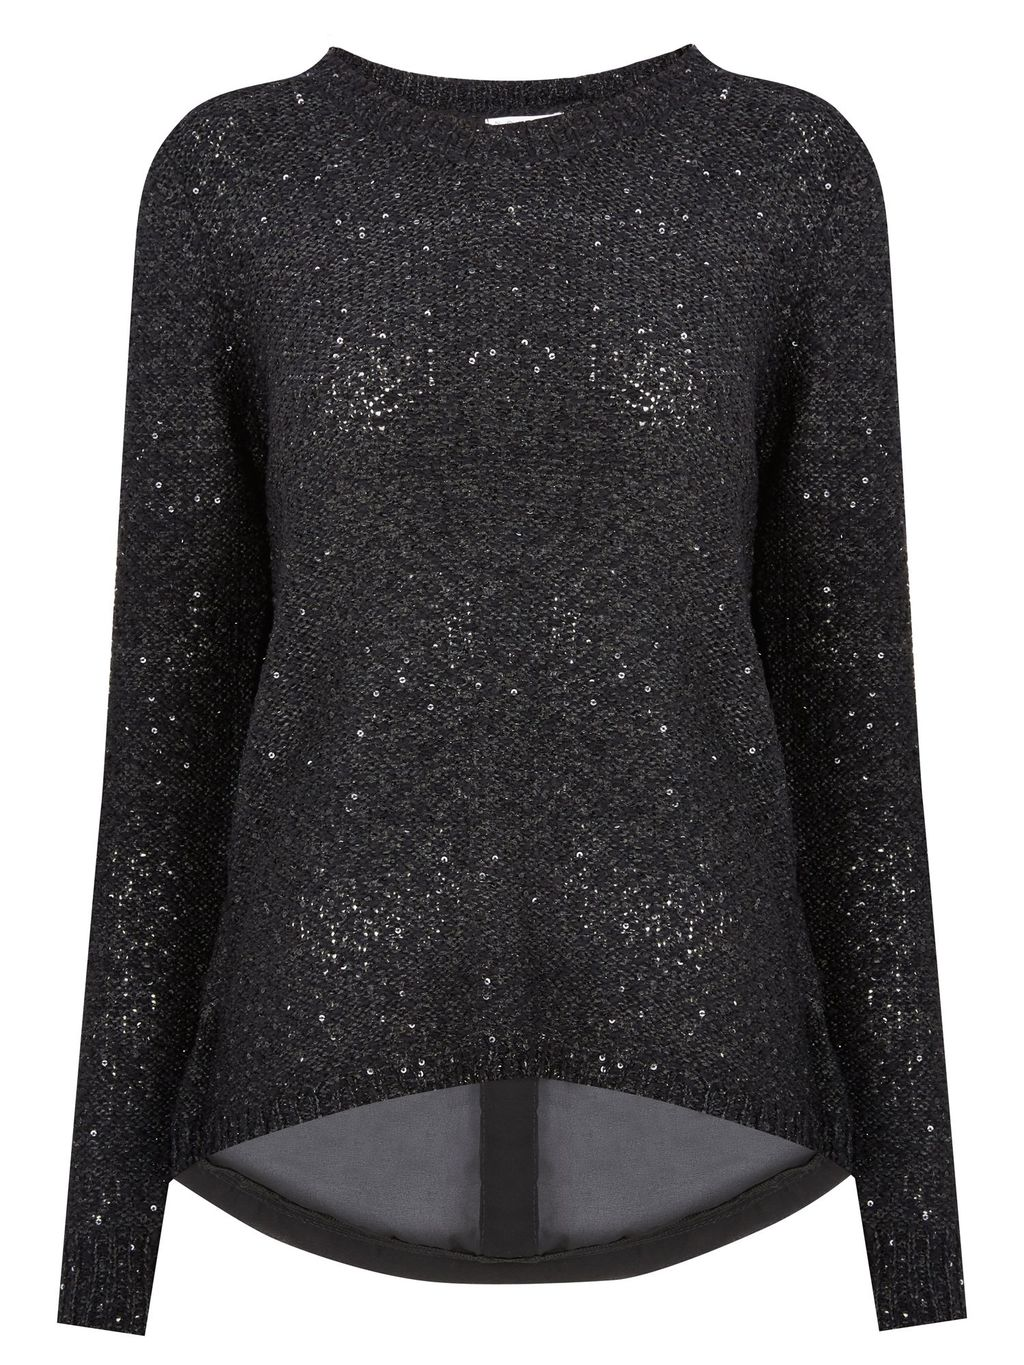 Sequin Jumper, Black - pattern: plain; style: standard; secondary colour: silver; predominant colour: black; occasions: casual, creative work; length: standard; fibres: cotton - mix; fit: standard fit; neckline: crew; back detail: longer hem at back than at front; sleeve length: long sleeve; sleeve style: standard; texture group: knits/crochet; pattern type: knitted - other; embellishment: sequins; season: a/w 2015